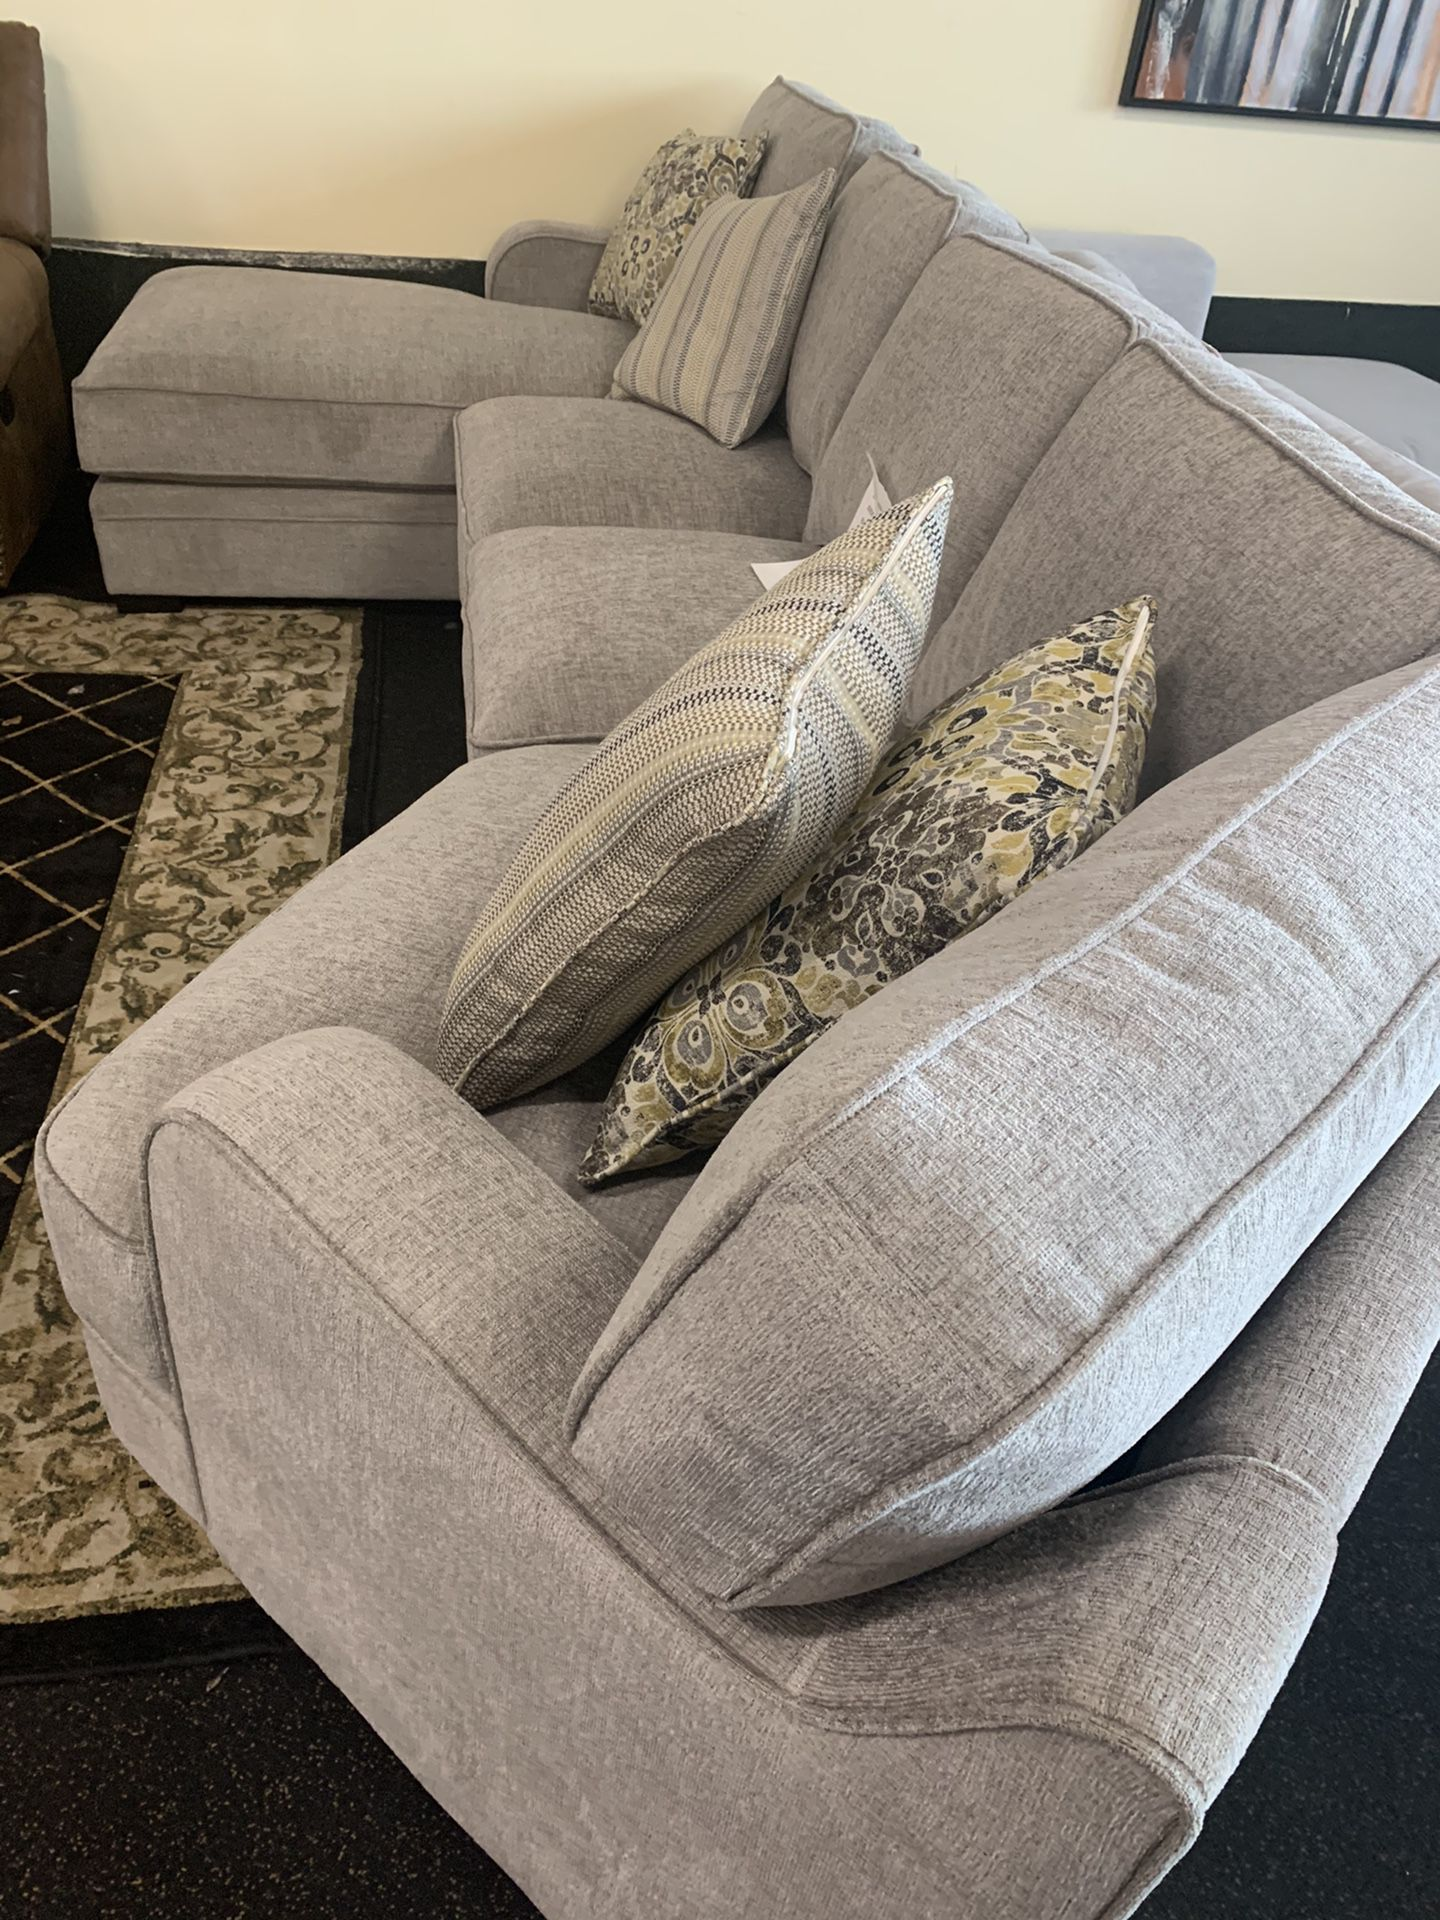 3 Piece  Sectional  On  Sale ( Below Amazon Price ) ON SALE